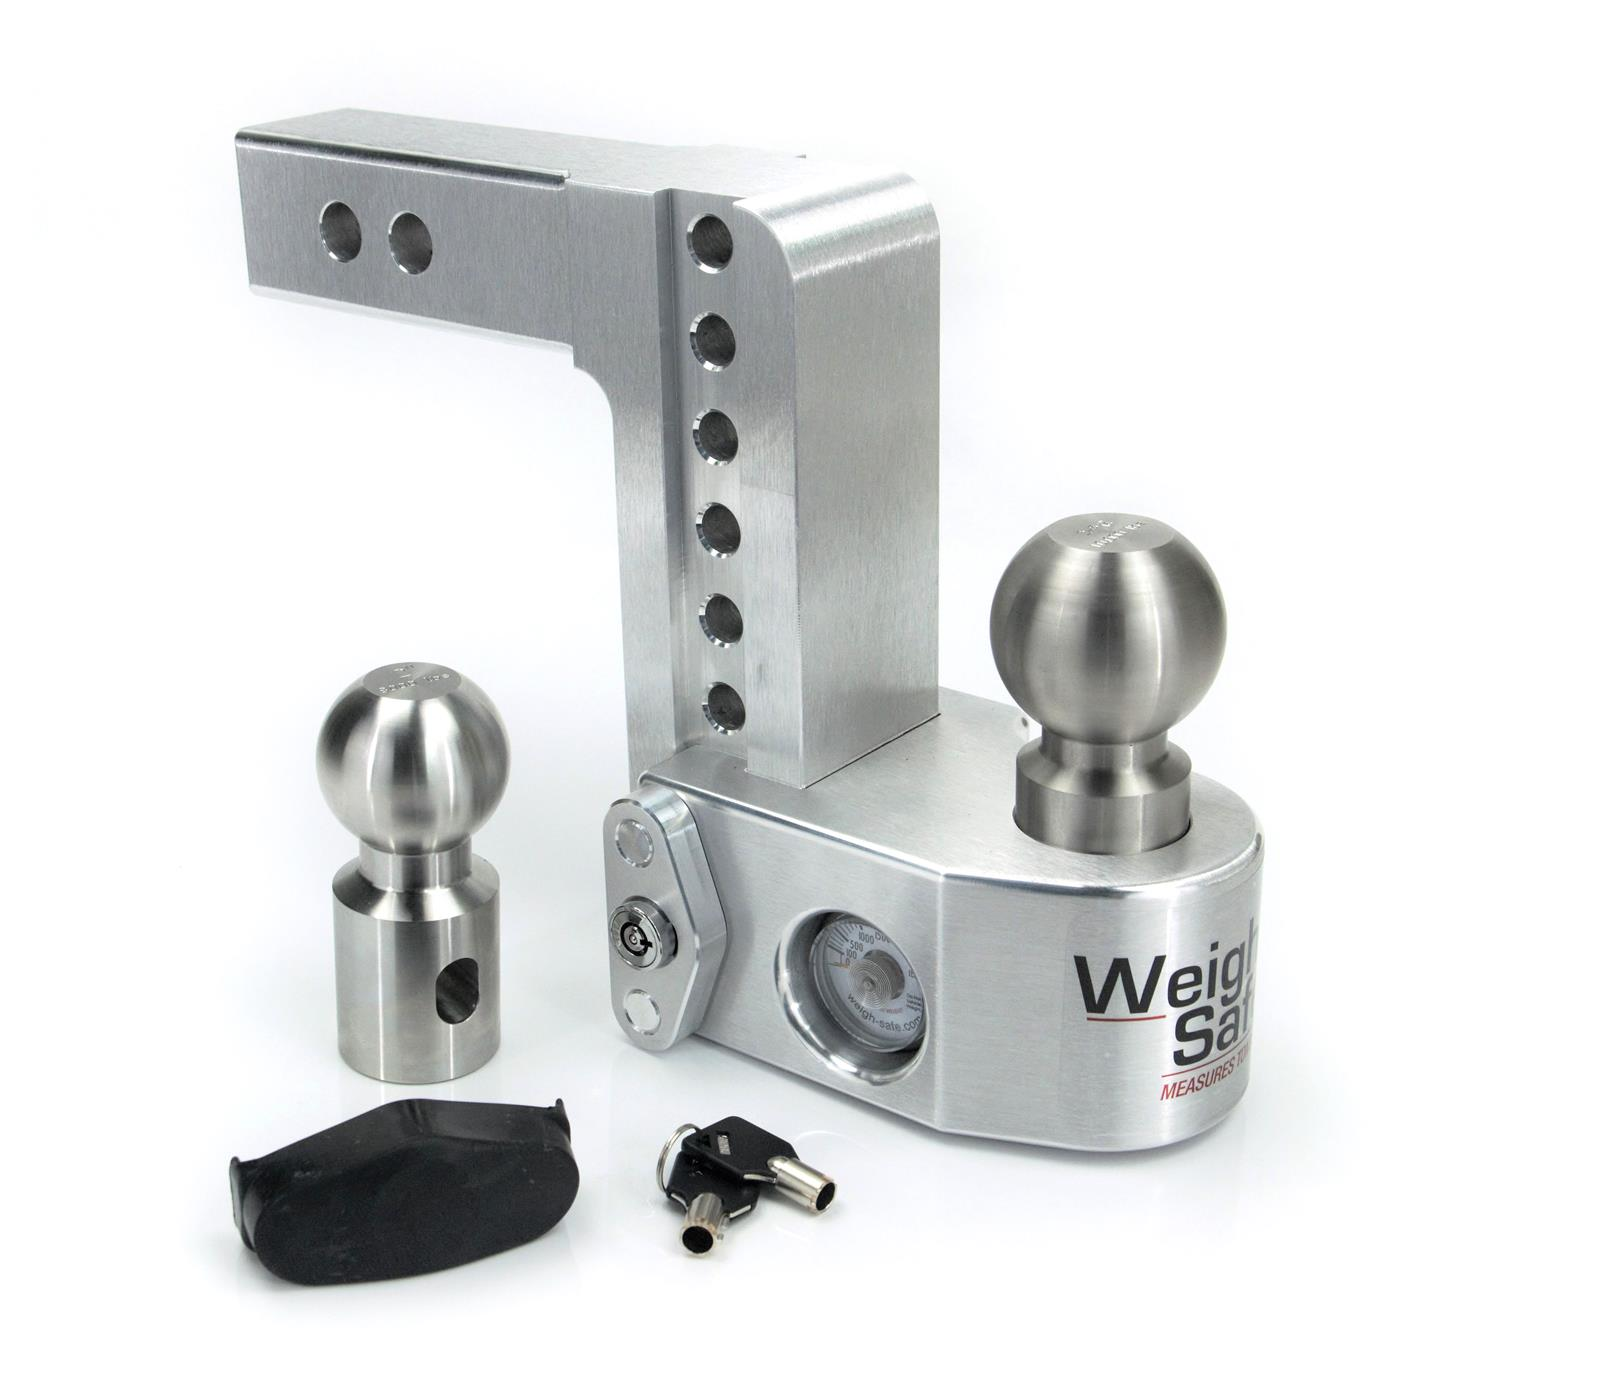 2 Ball Hitch >> Weigh Safe Trailer Hitch Ball Mounts Ws6 2